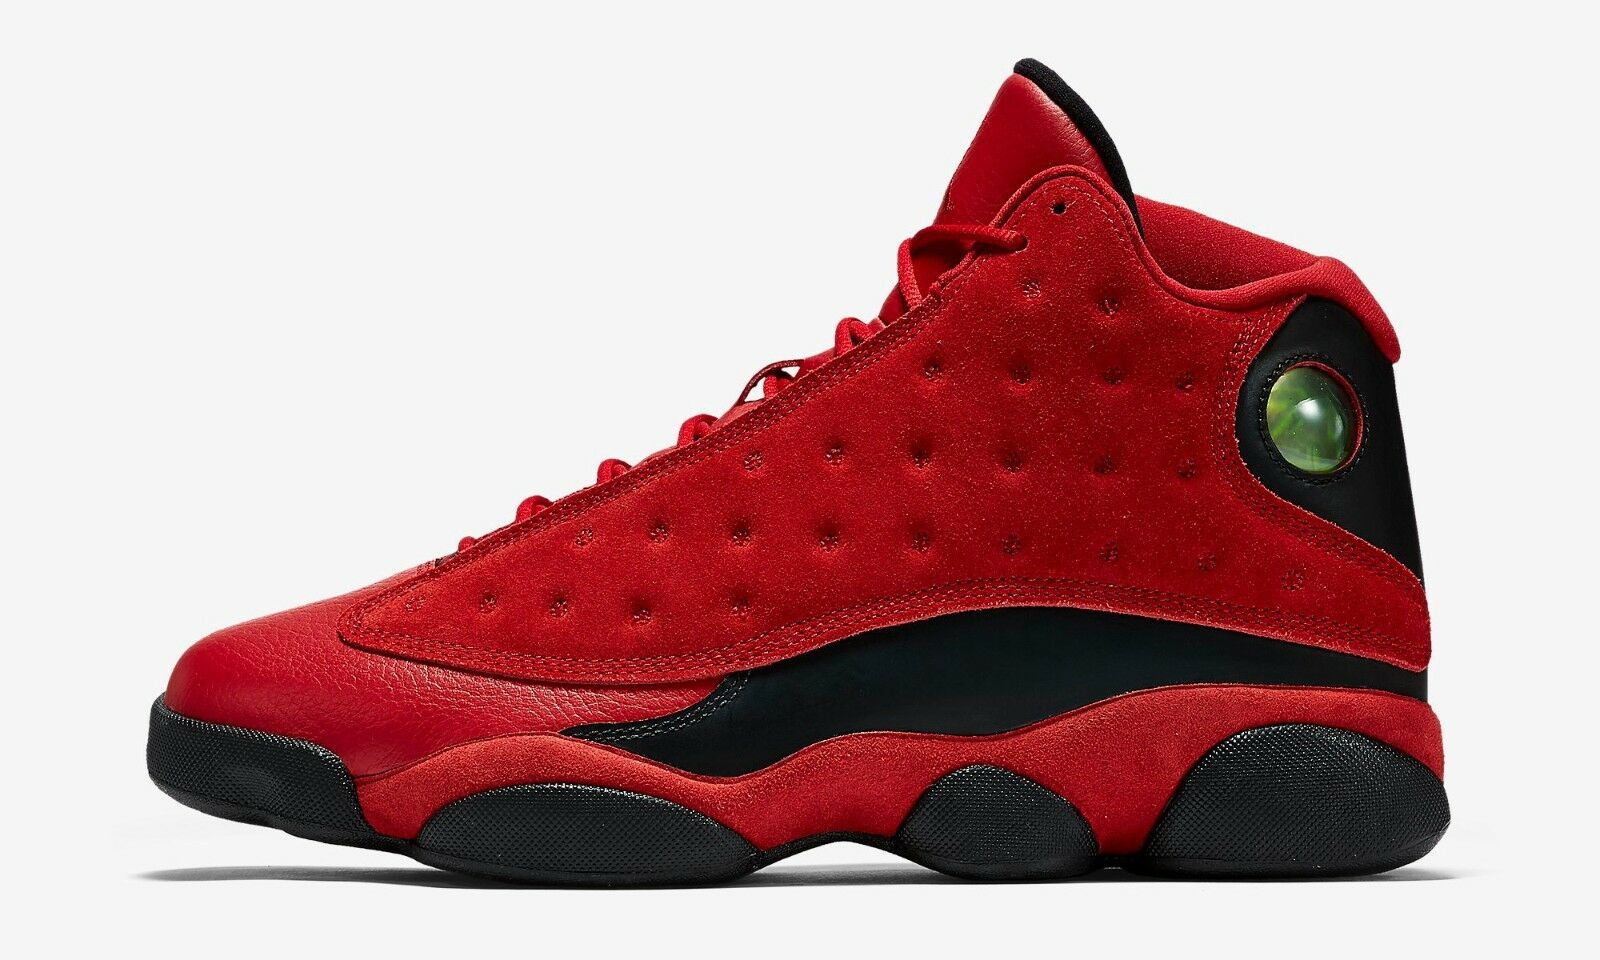 2016 Nike Air Jordan 13 XIII Retro QS Chinese 888164-601 Singles Day Size 7.5. 888164-601 Chinese 043d2f